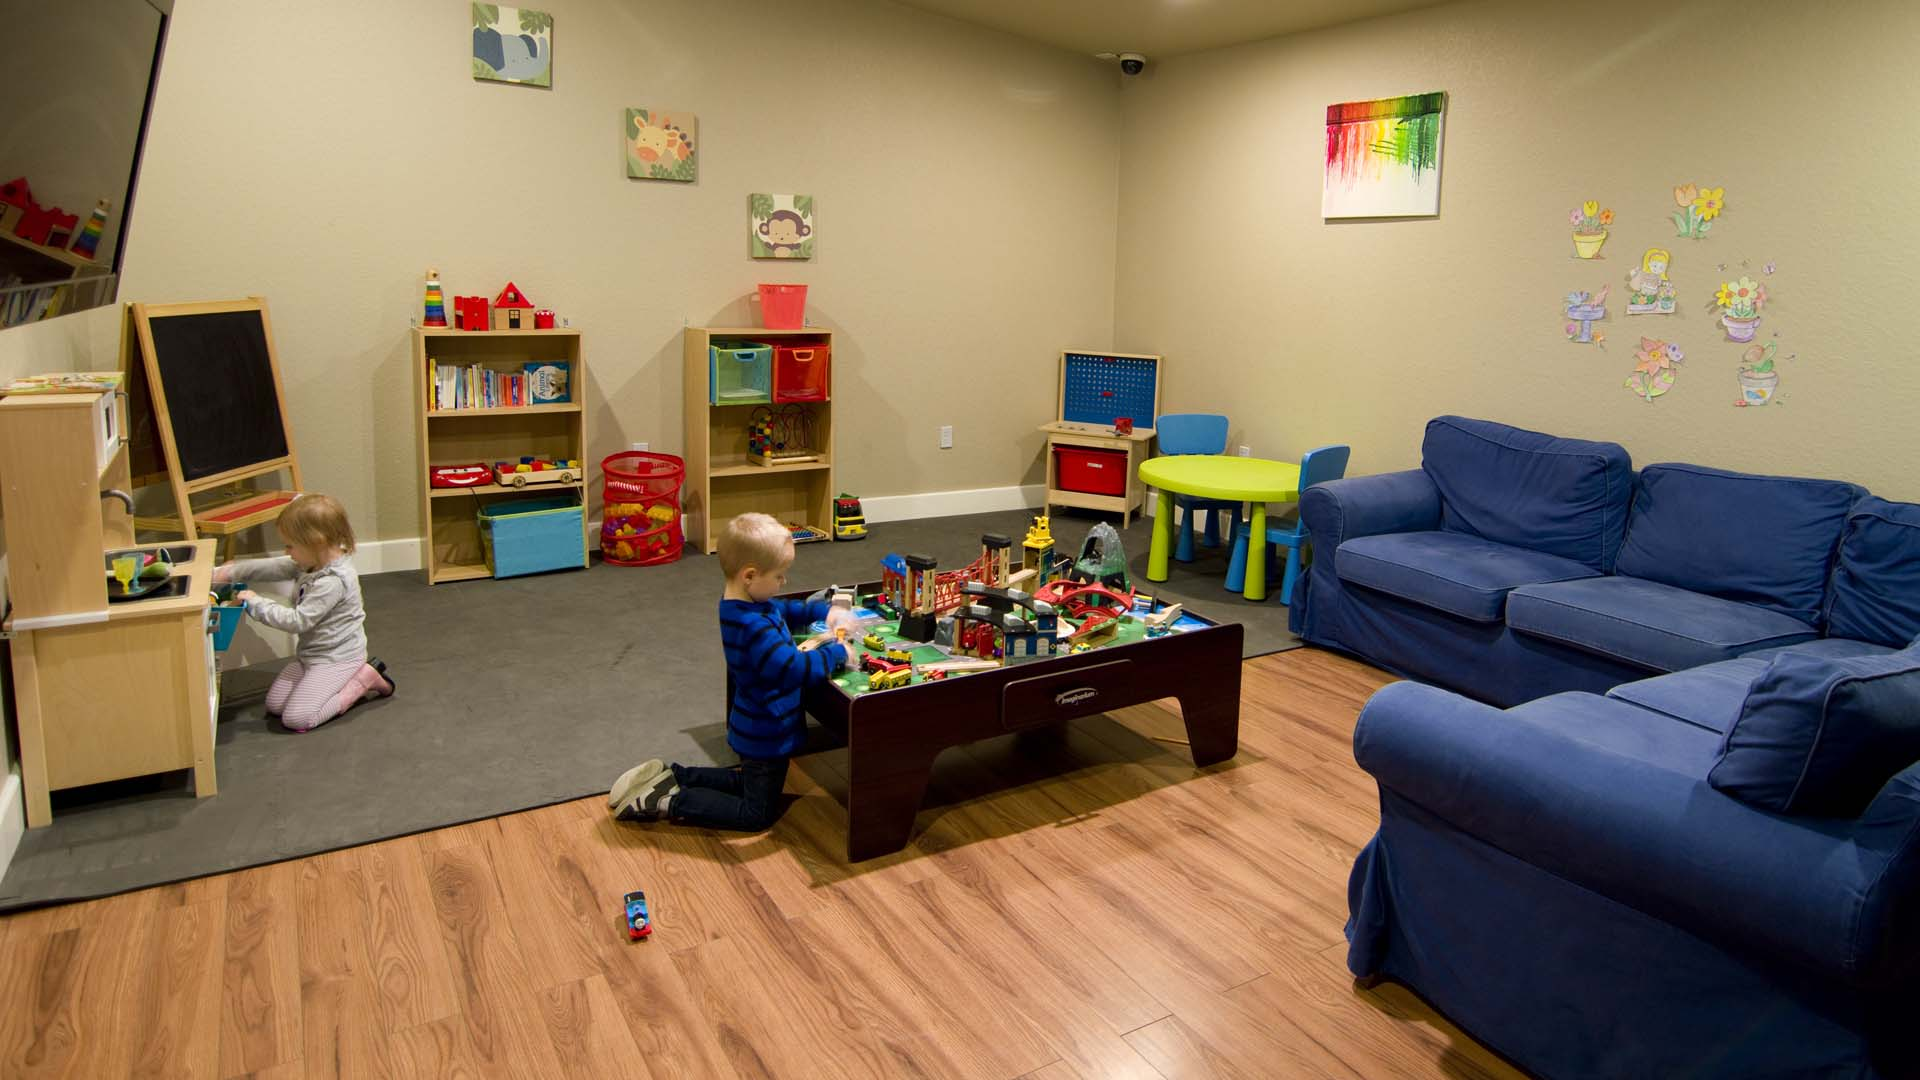 A little boy plays with a toy train set, while a little girl has fun with the play kitchen in Kids Club.